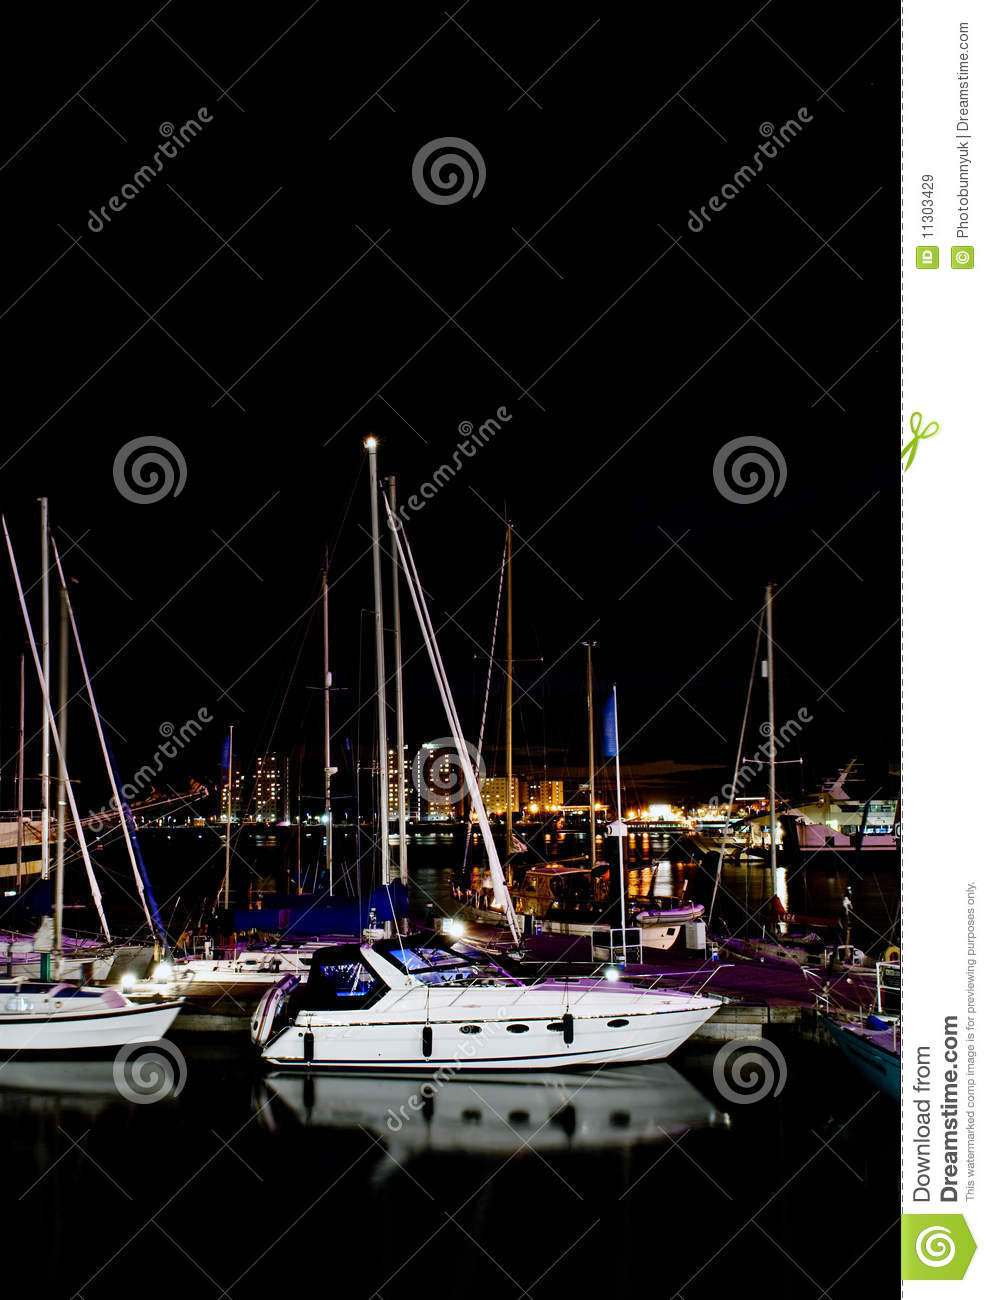 Boote nachts